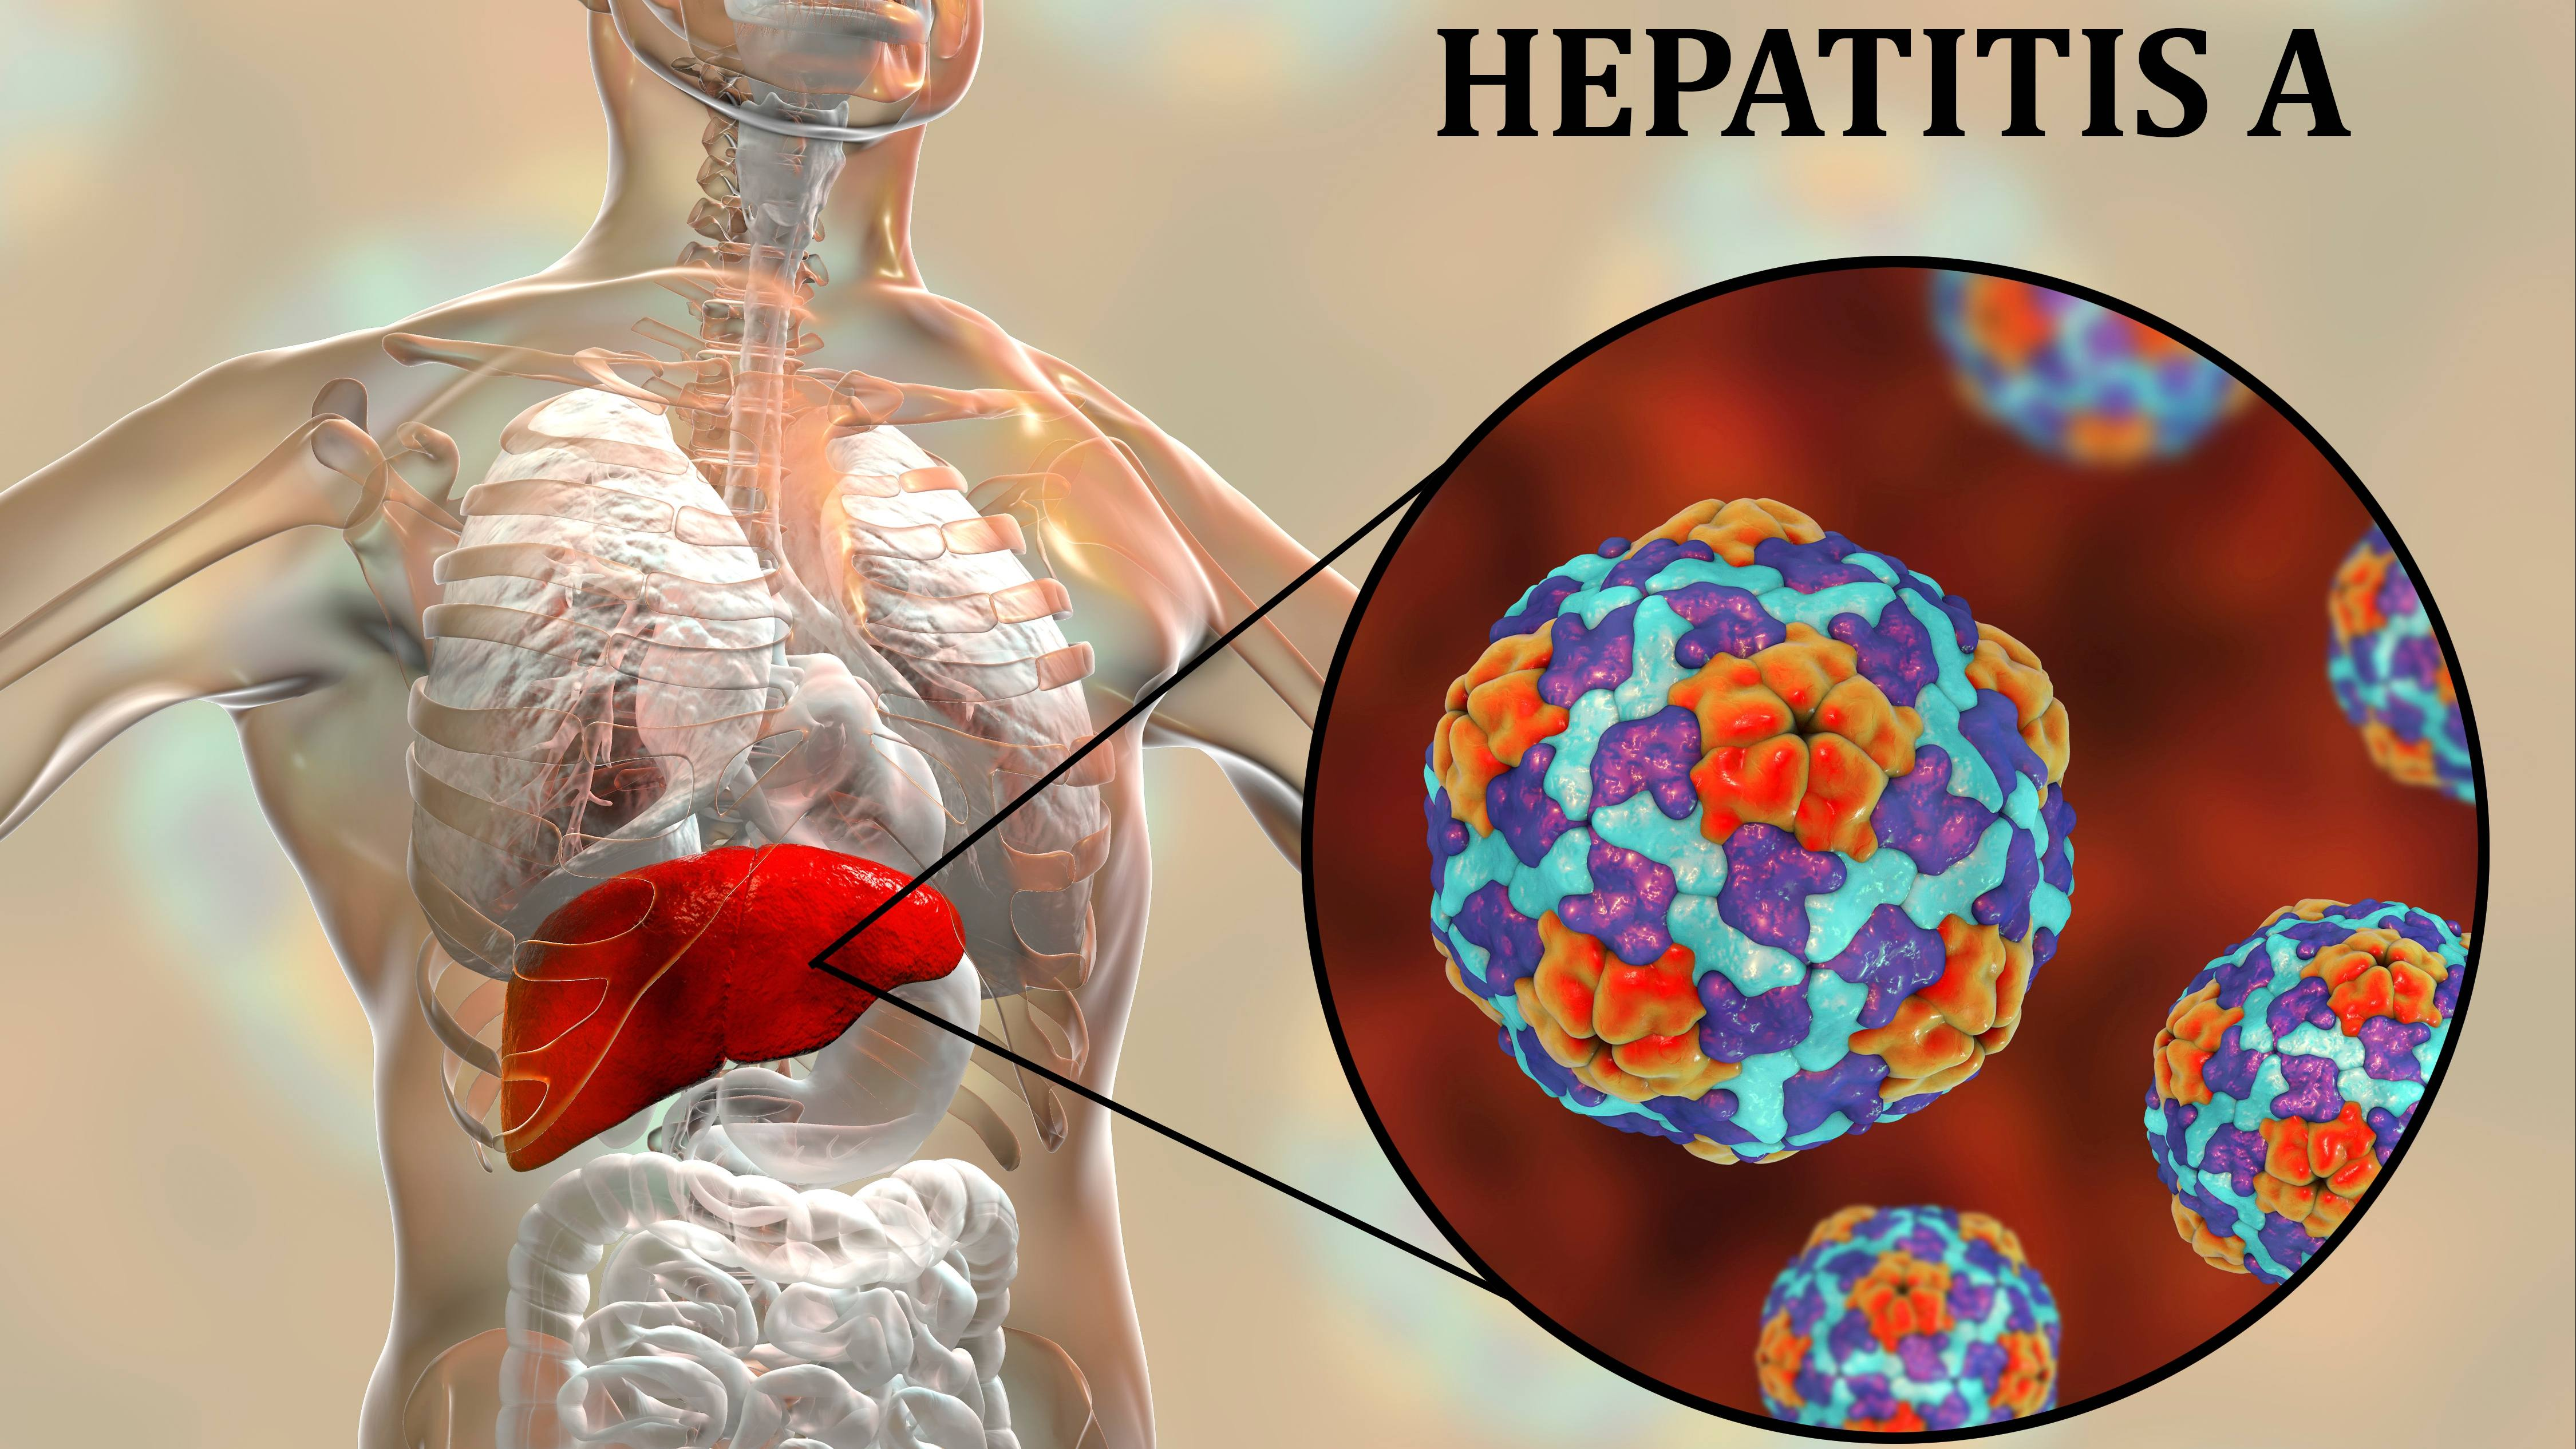 graphic of internal organs, highlighting the liver and highlighting Hepatitis A